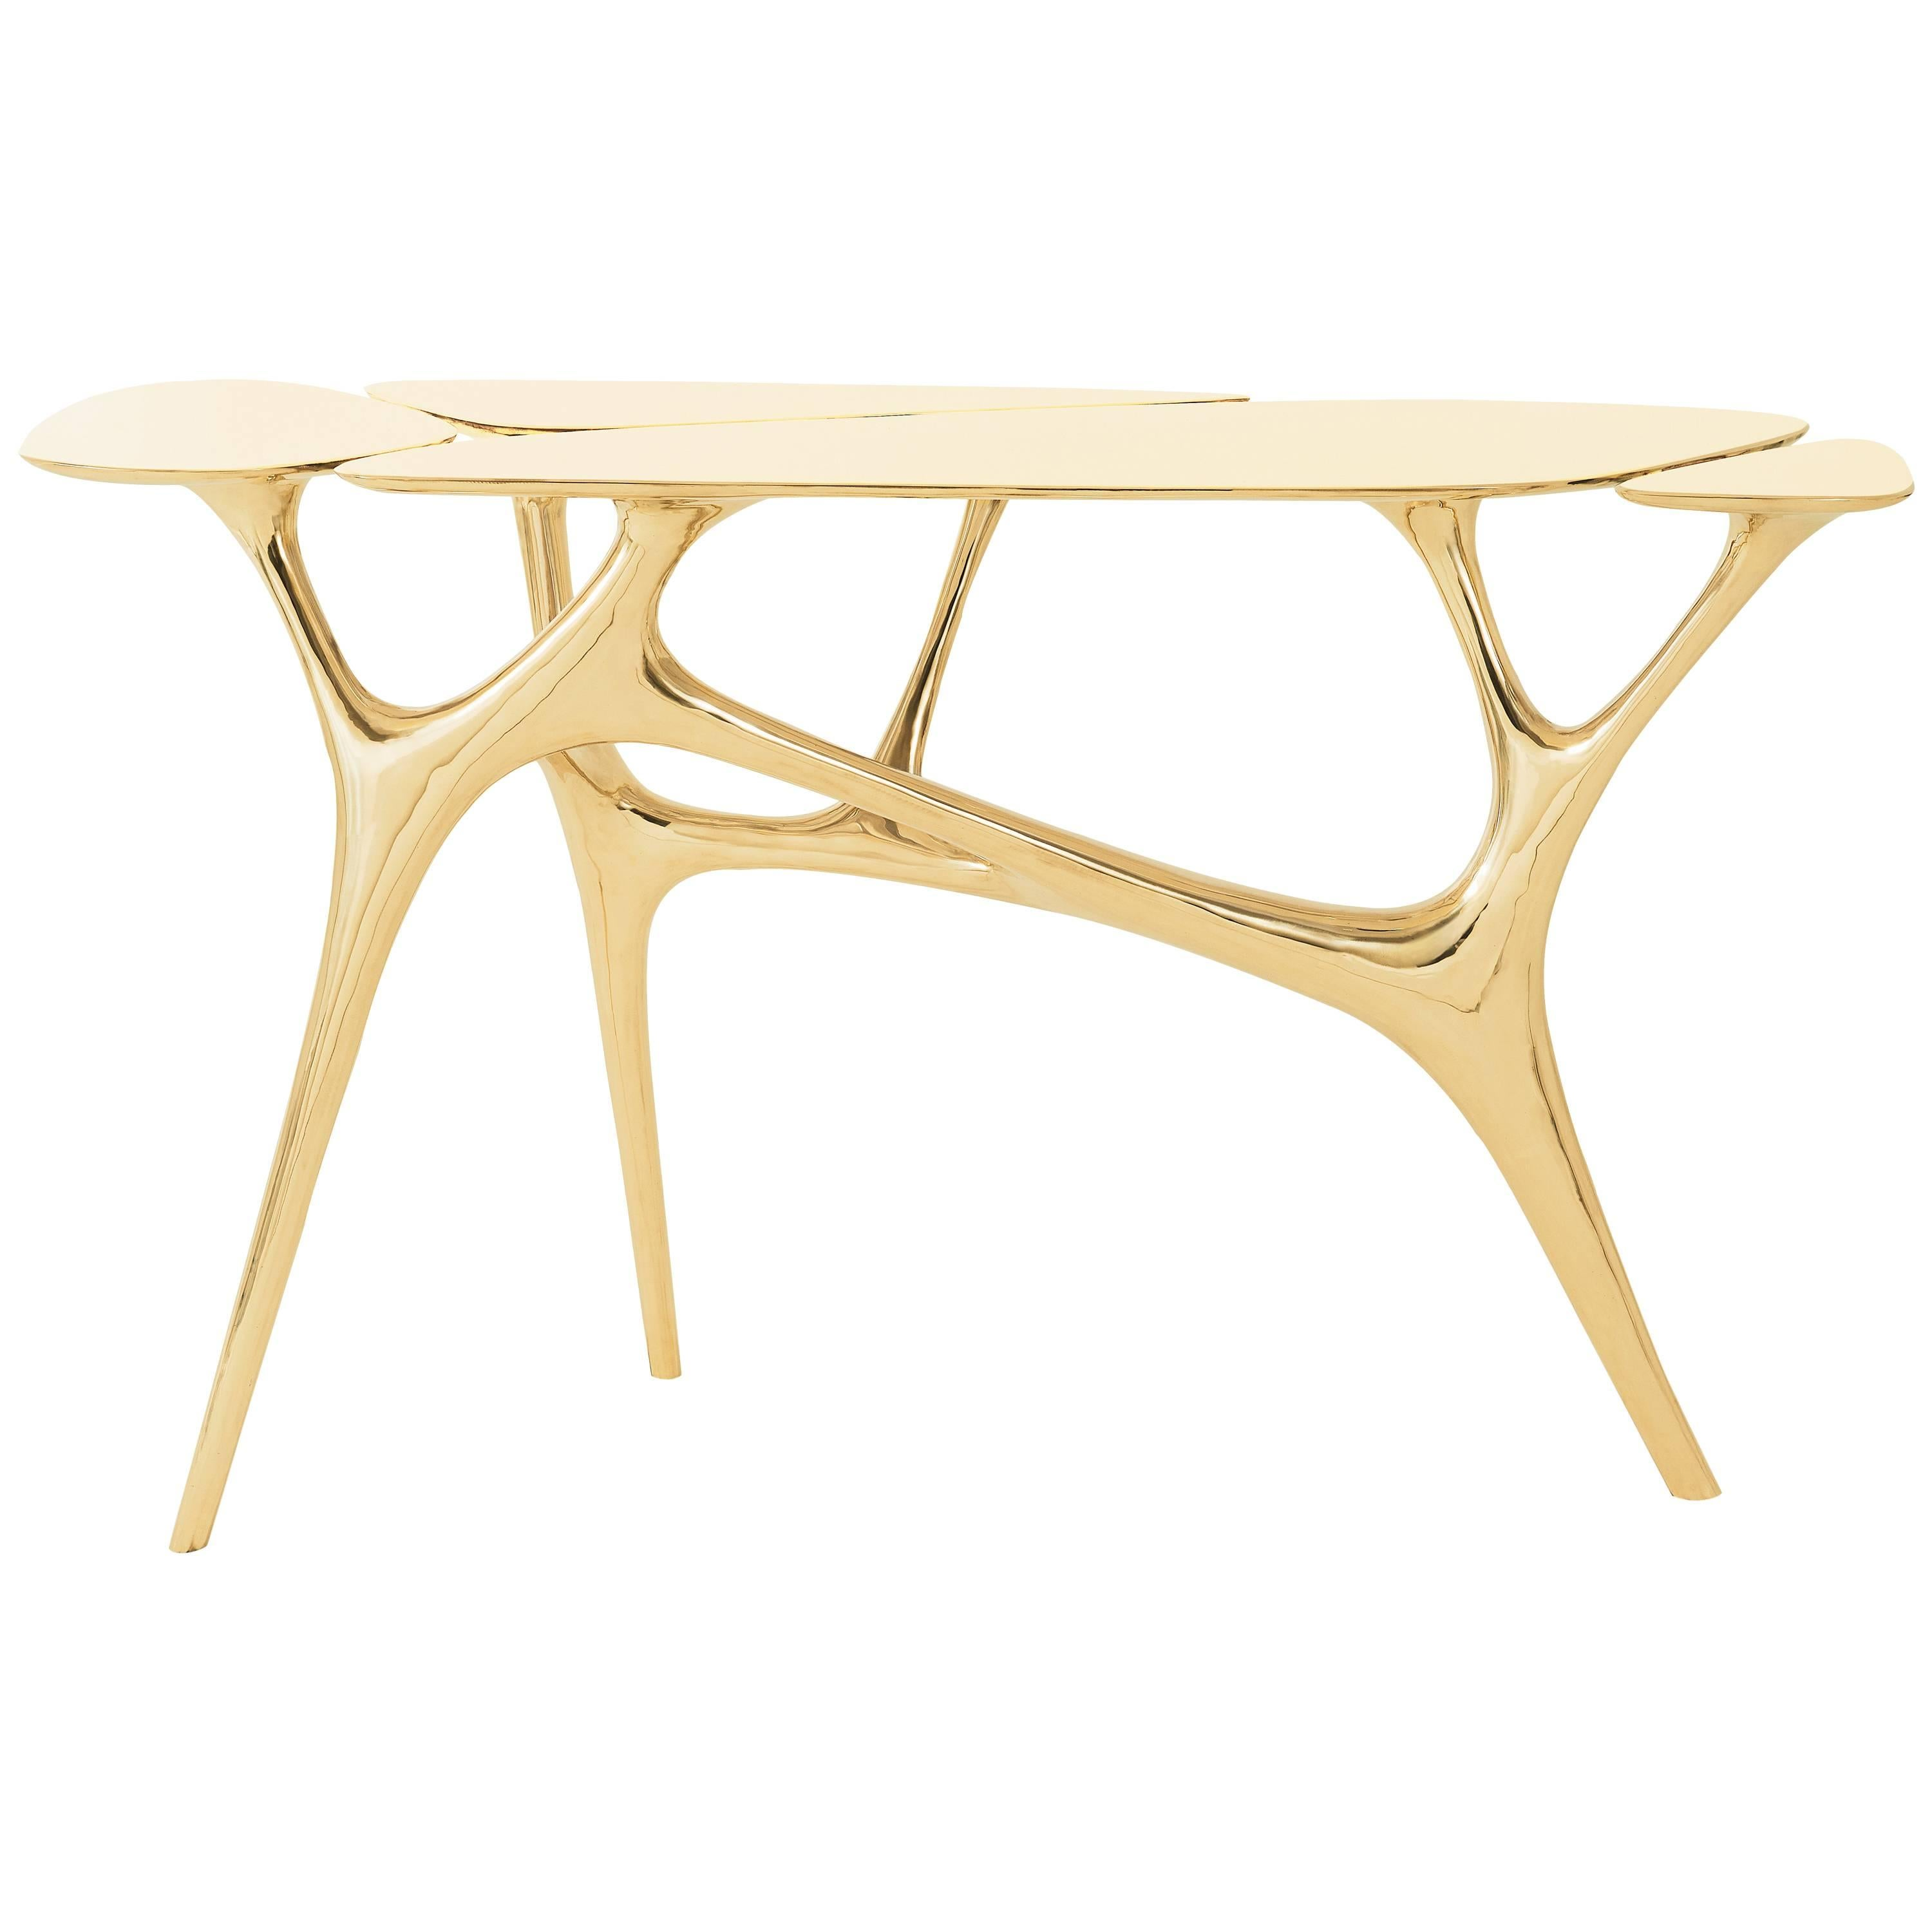 Lotus Console Table/Entry Way/Hallway Table Polished Brass by Zhipeng Tan